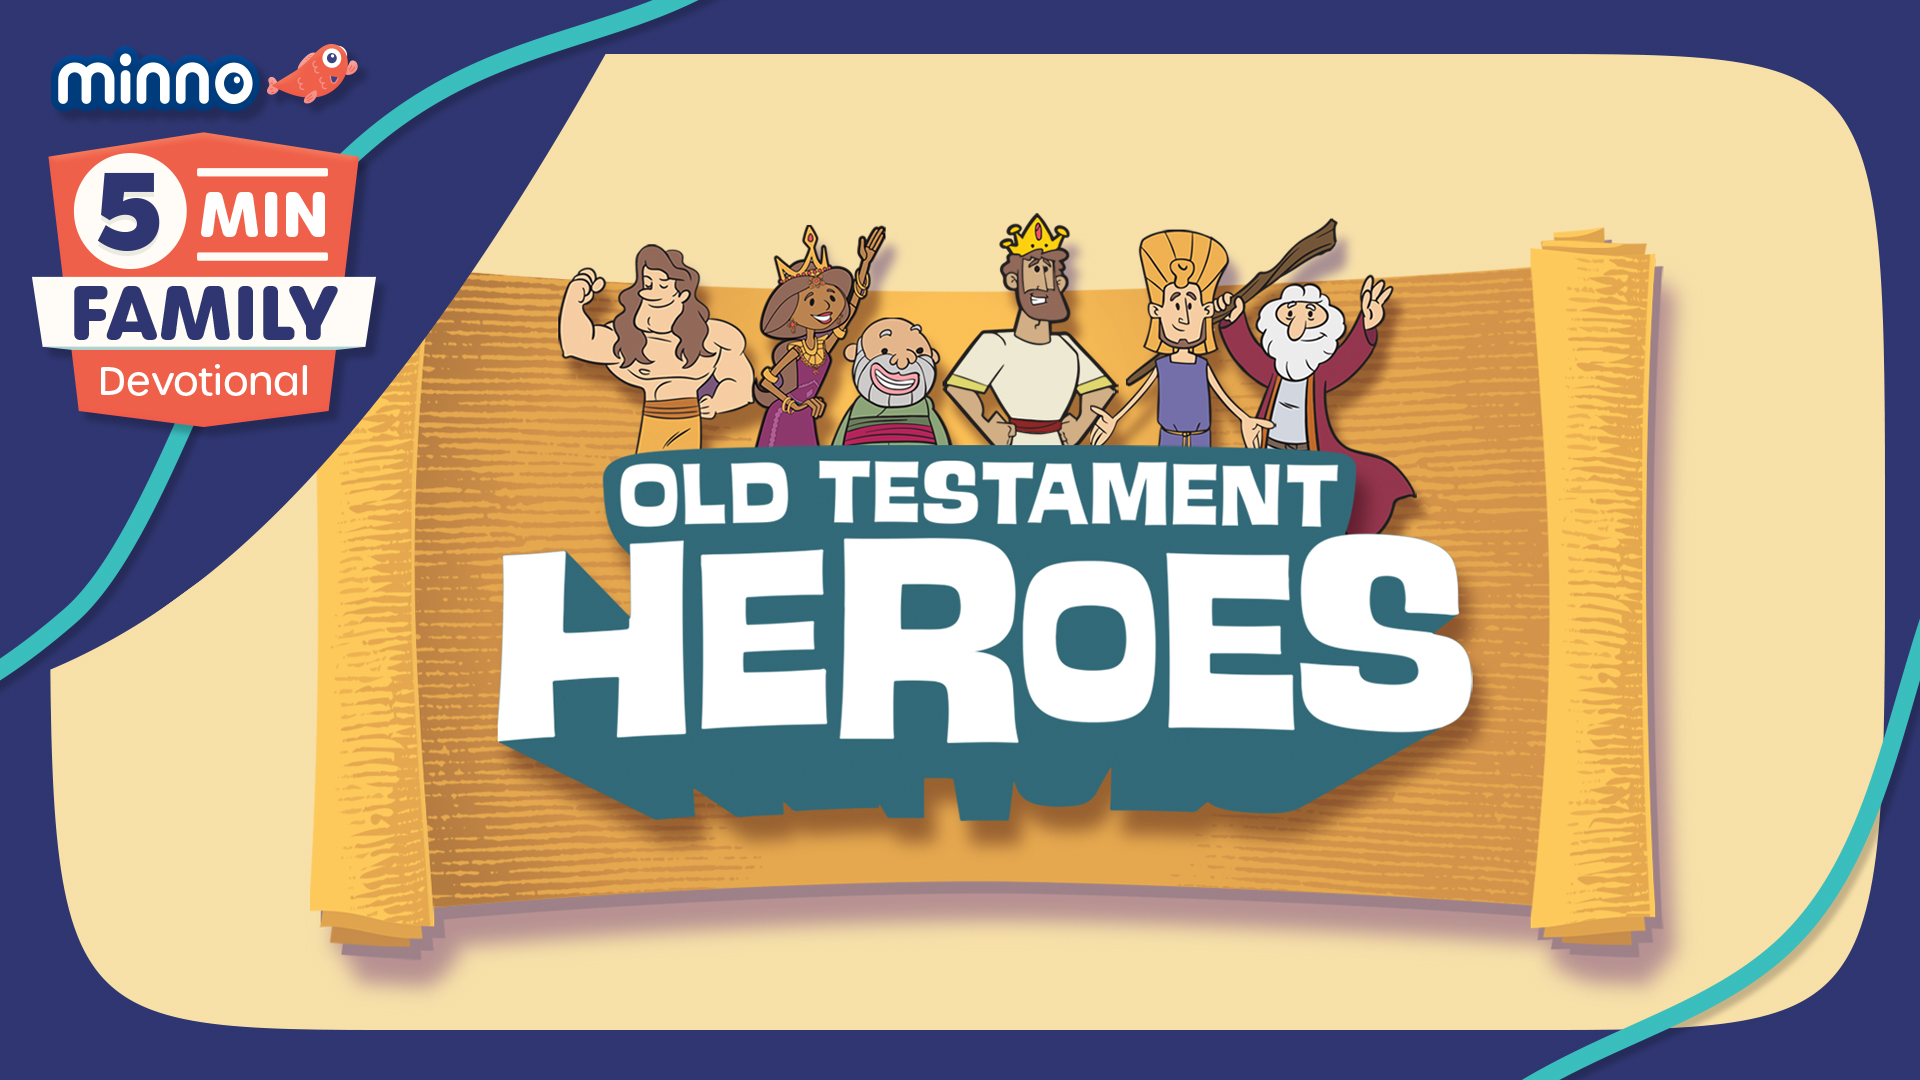 Old Testament Heroes: 5 Minute Family Devotional Plan